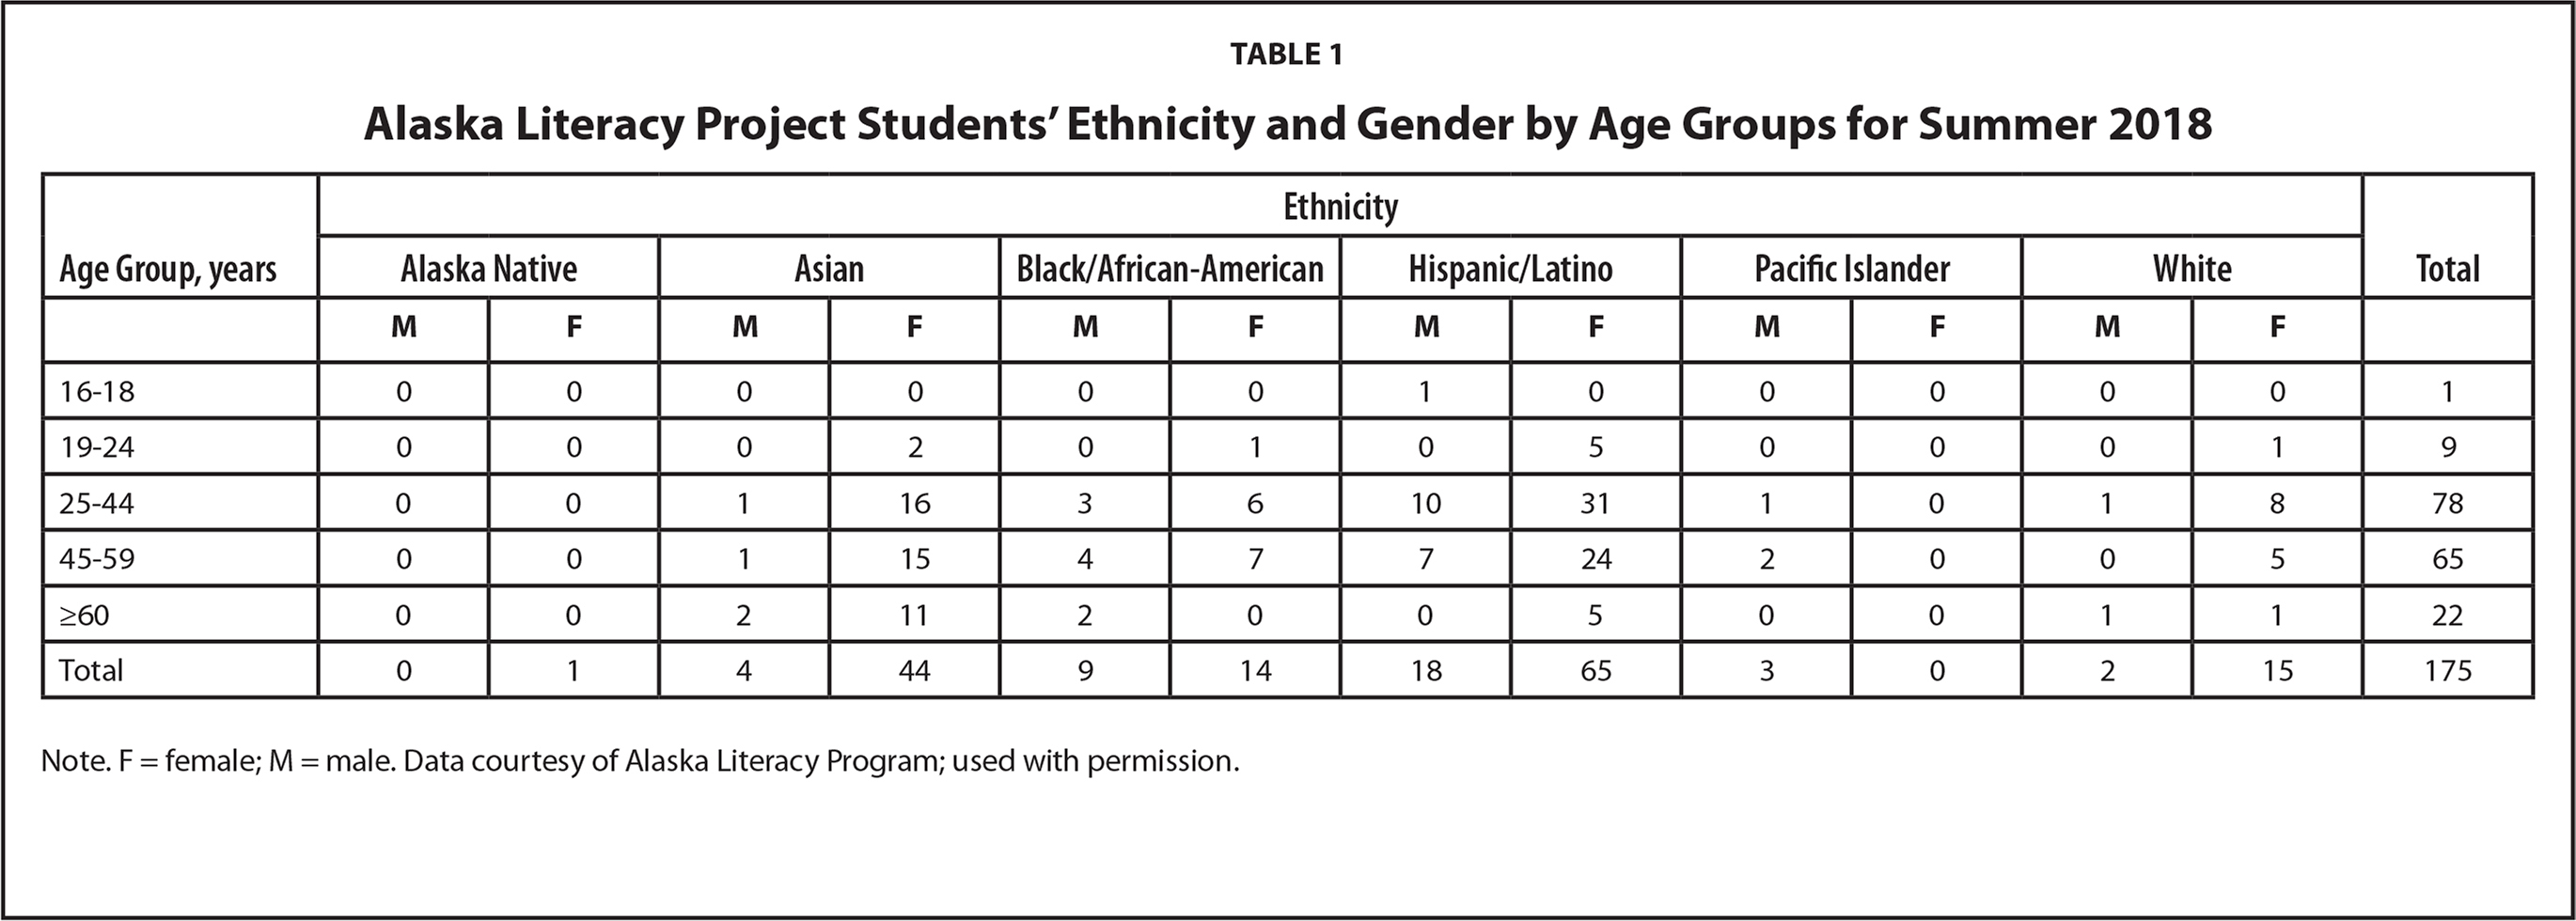 Alaska Literacy Project Students' Ethnicity and Gender by Age Groups for Summer 2018